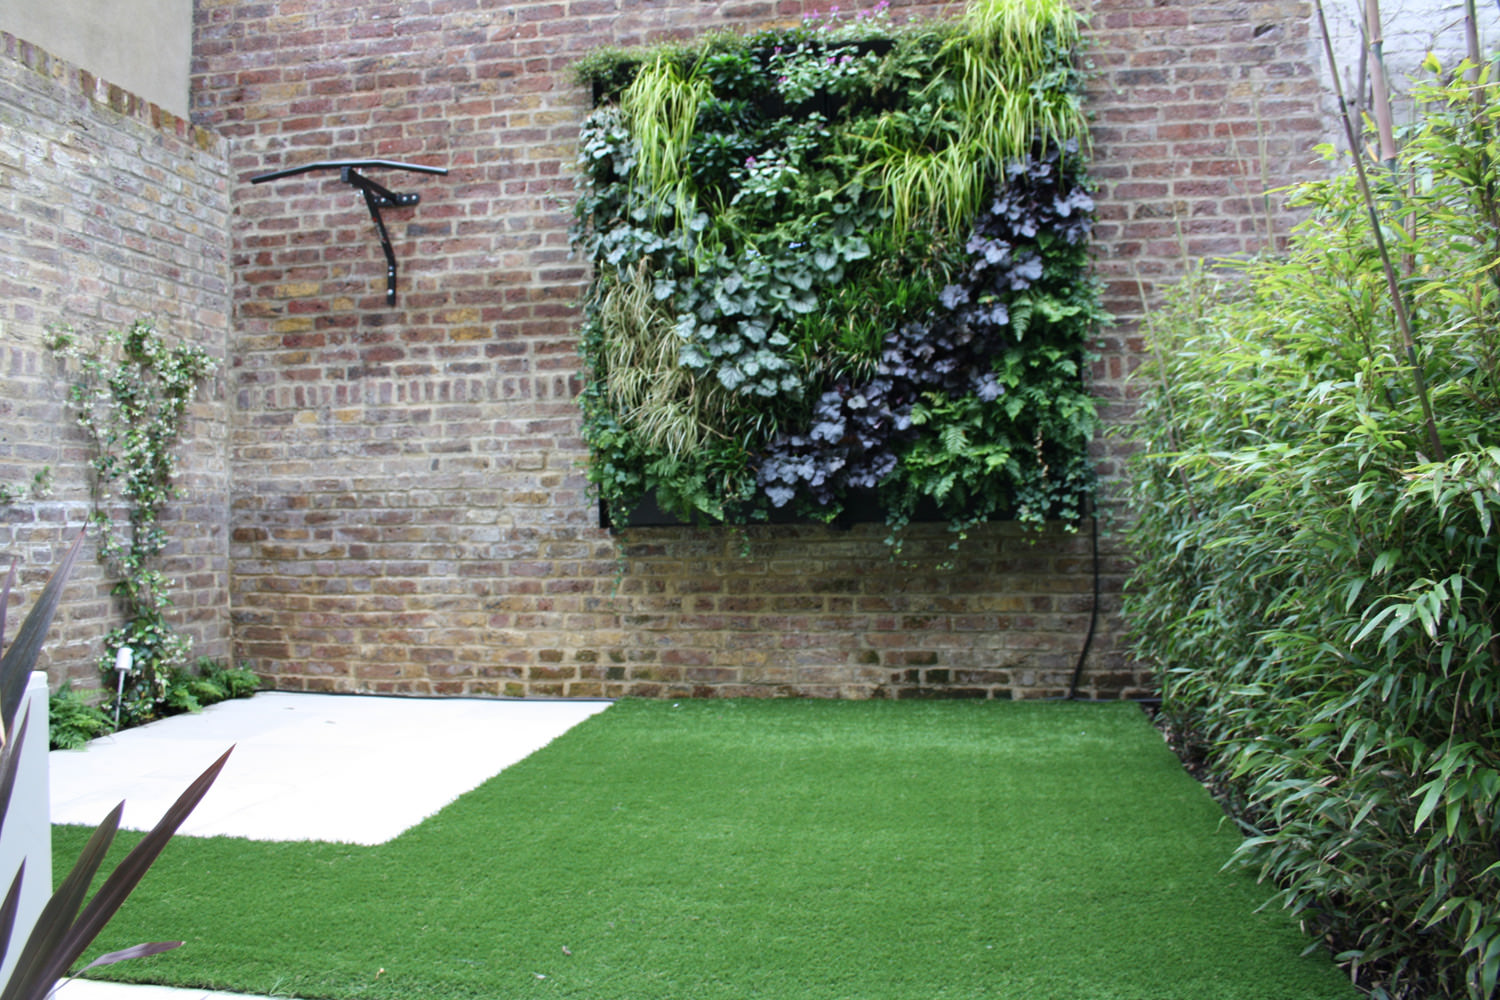 Top 10 london garden designs garden club london for Little garden design